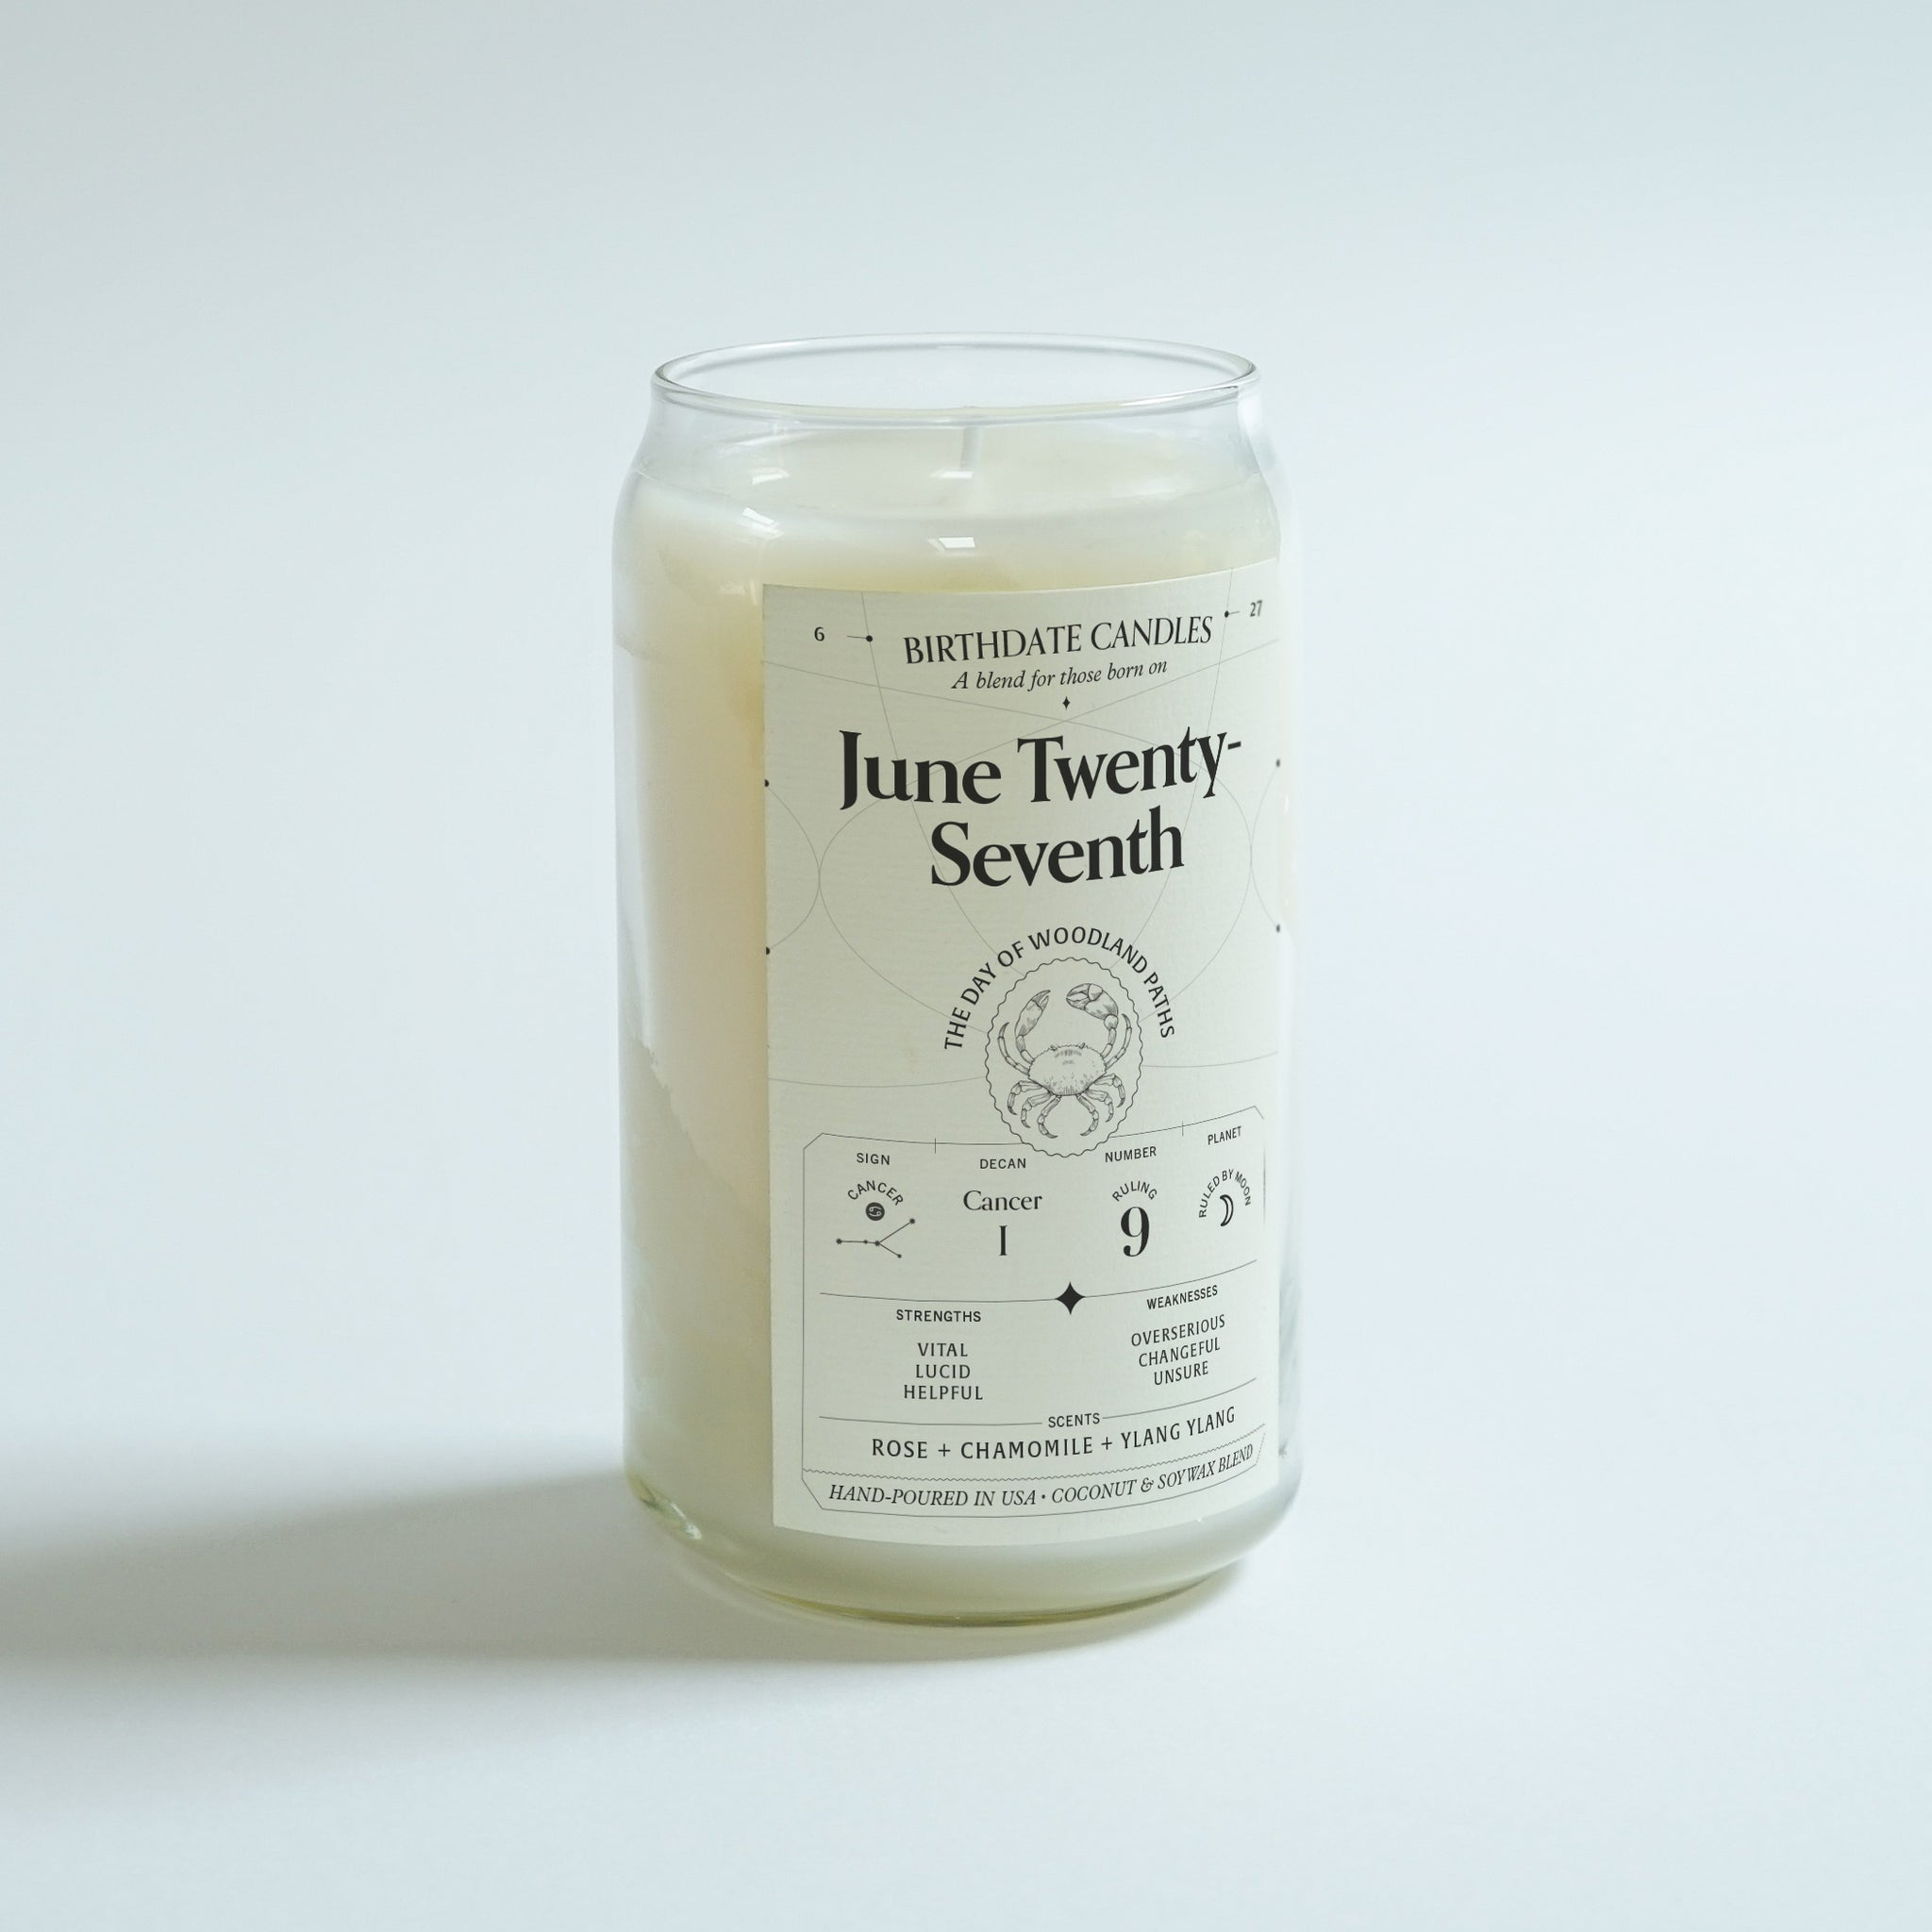 The June Twenty-Seventh Candle